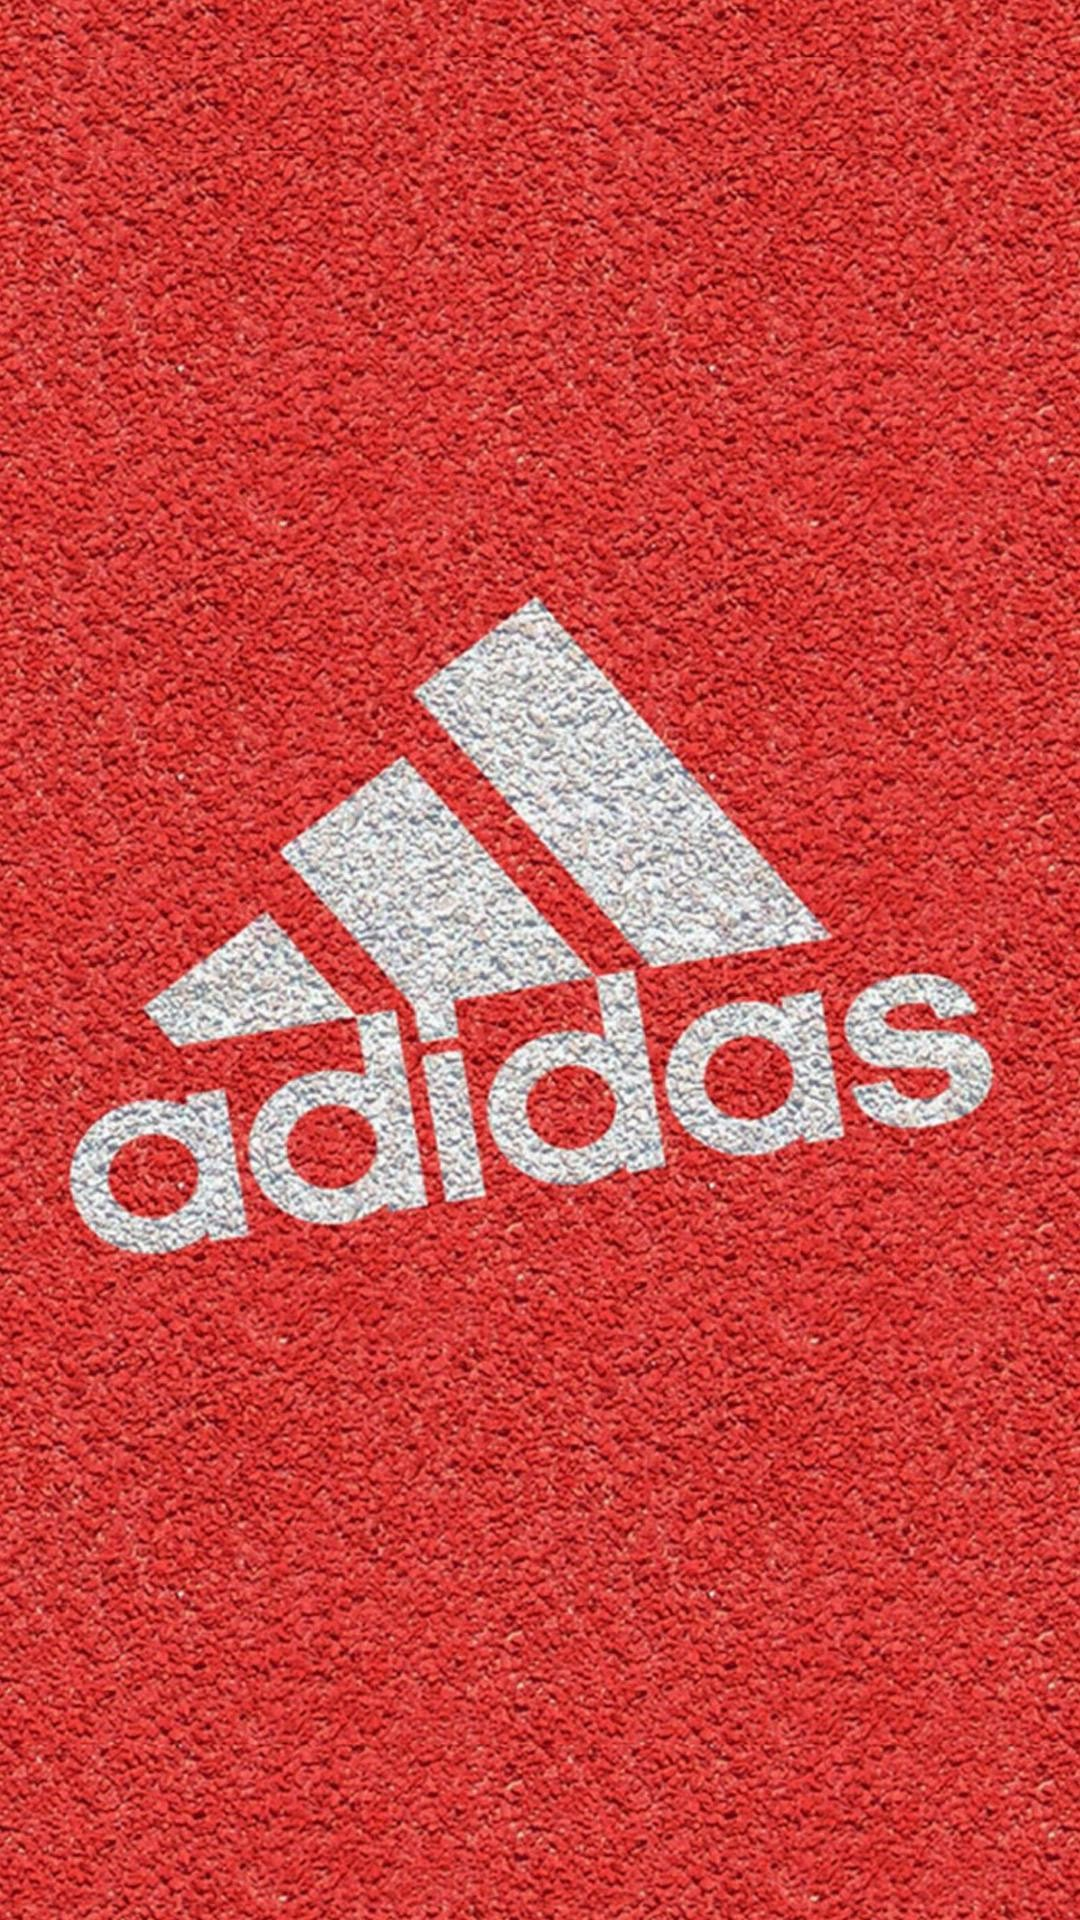 wallpaper.wiki-Red-Adidas-Iphone-Background-PIC-WPC0014250